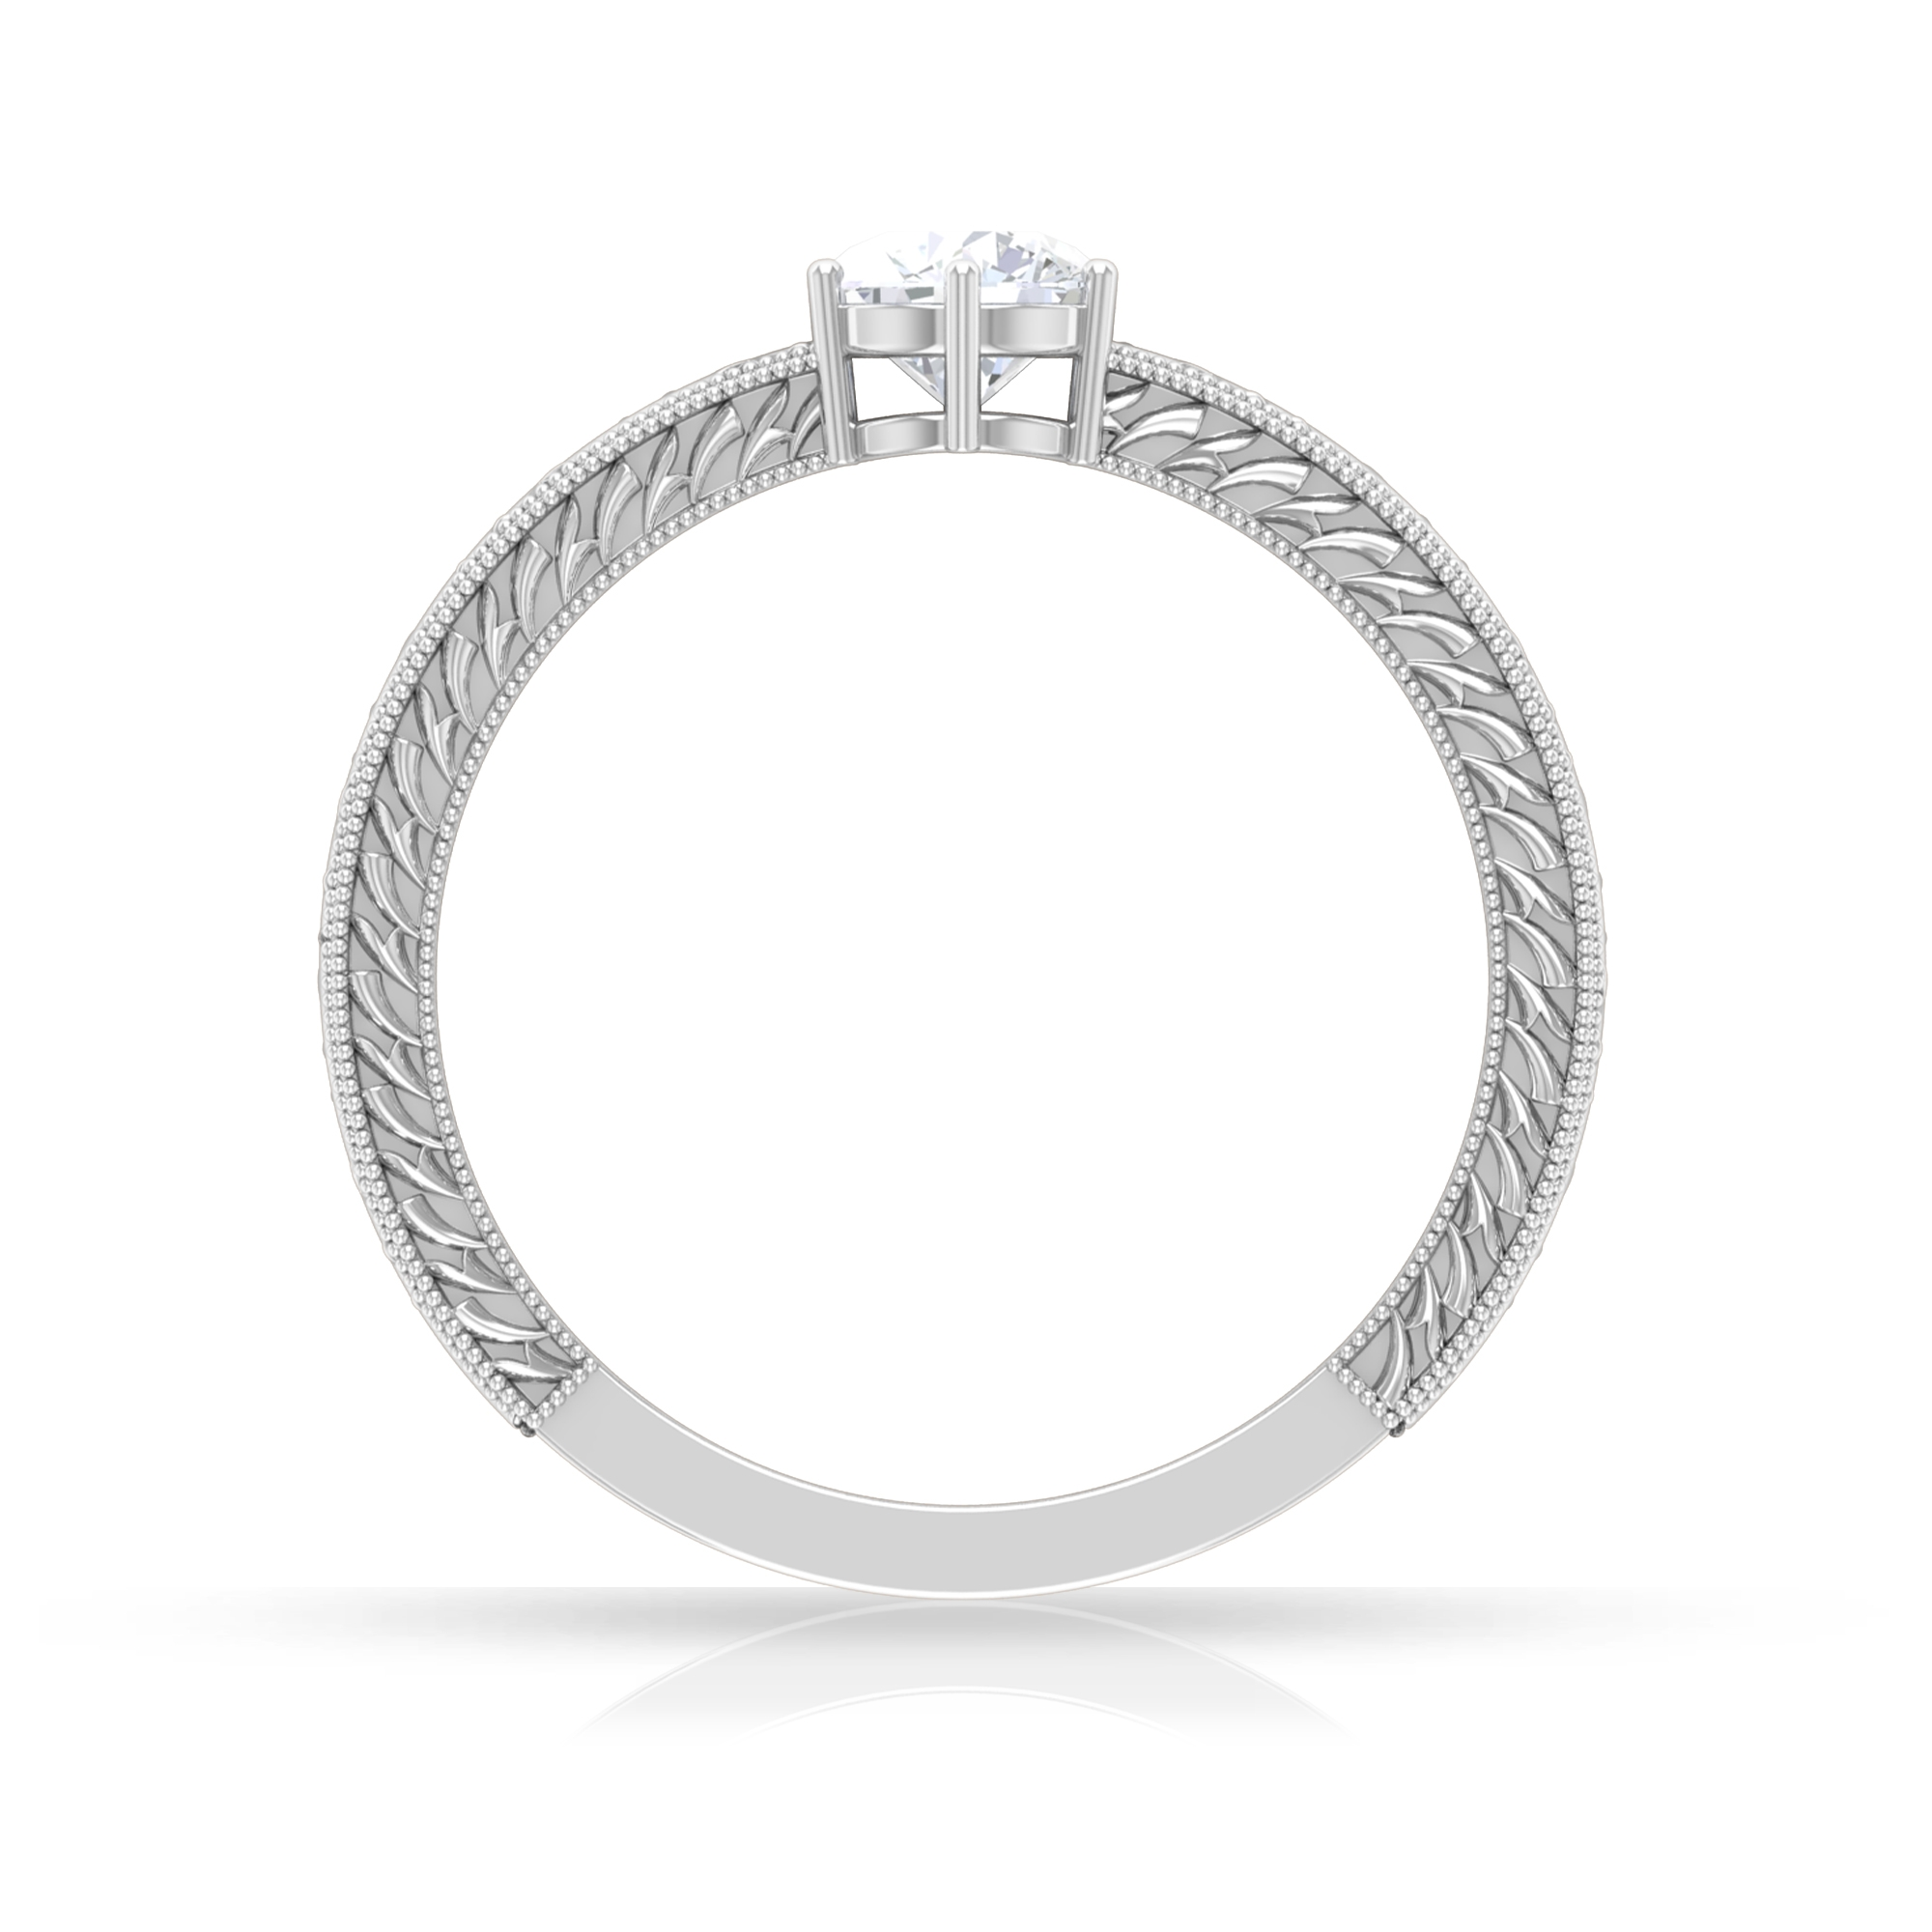 5 MM Round Cut Diamond Solitaire Ring in 6 Prong Setting with Engraved Details